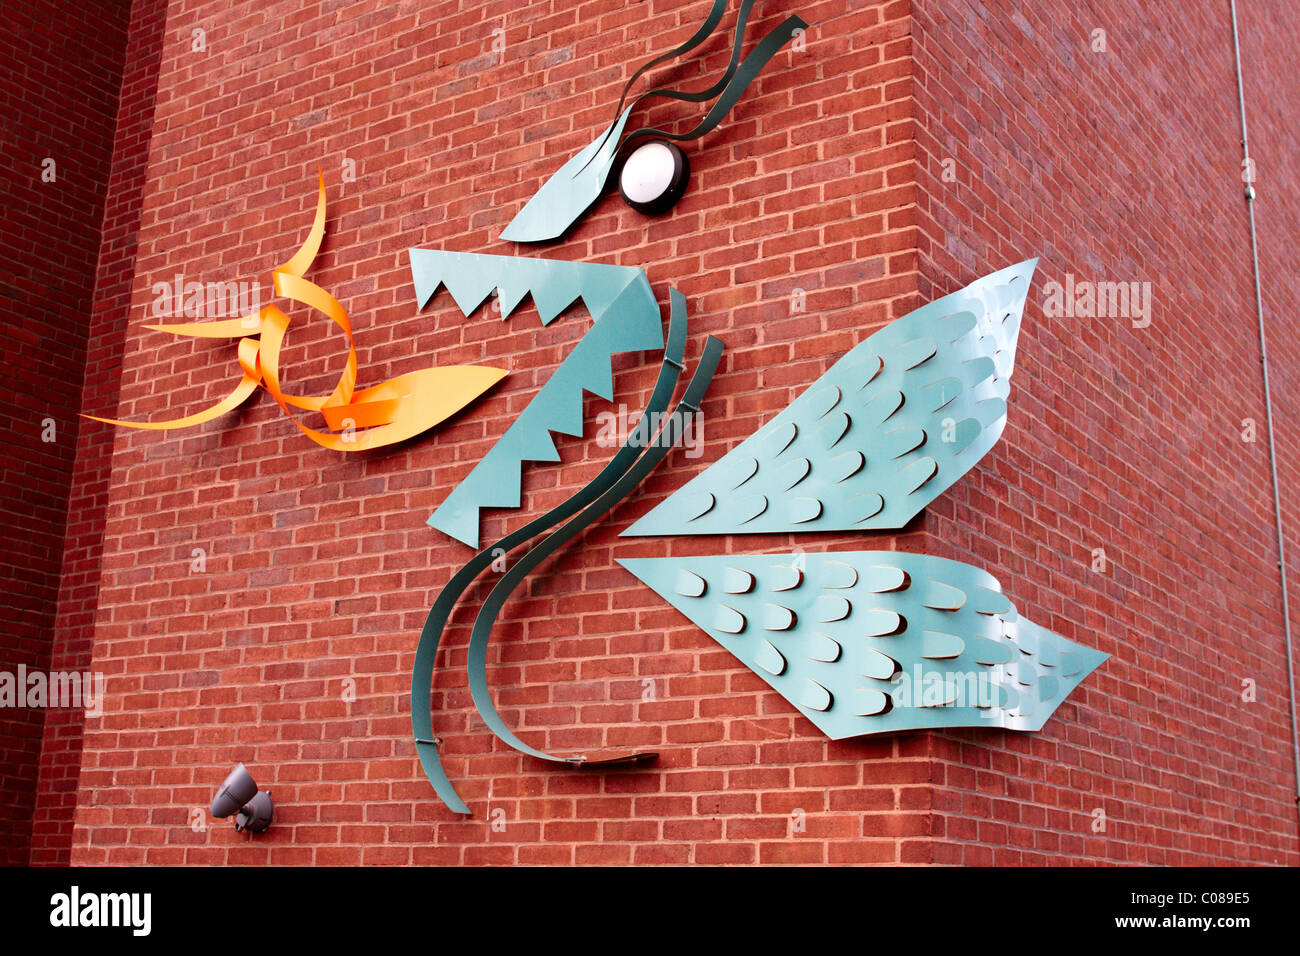 Artwork near Children's ward at St George's hospital in Tooting - Stock Image